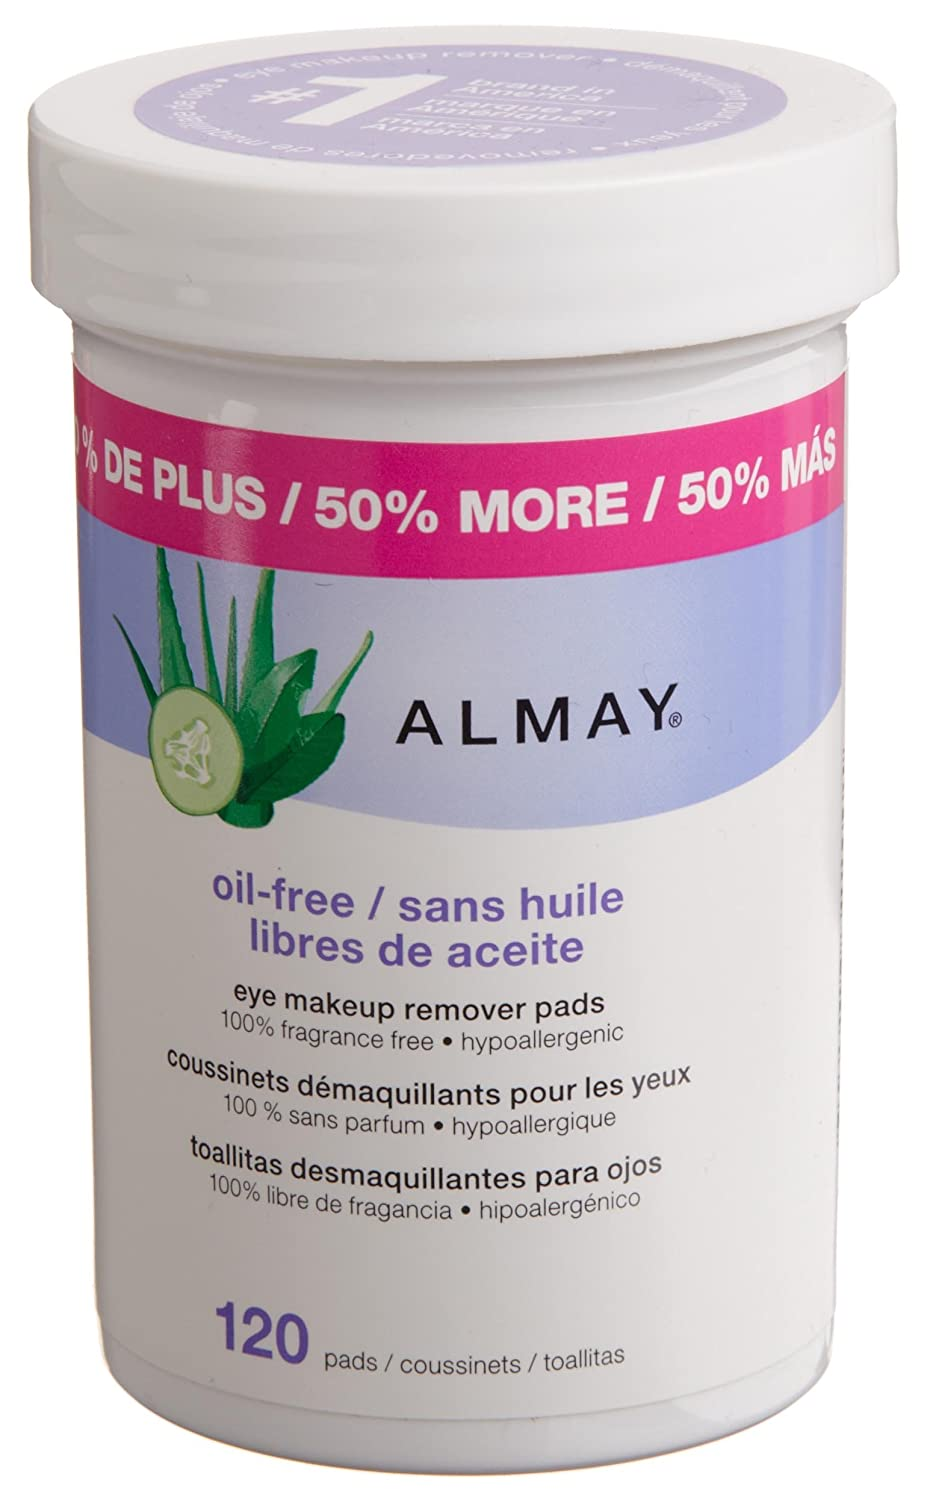 Almay Oil-free Eye Makeup Remover Pads, 120-Count (Pack of 2)